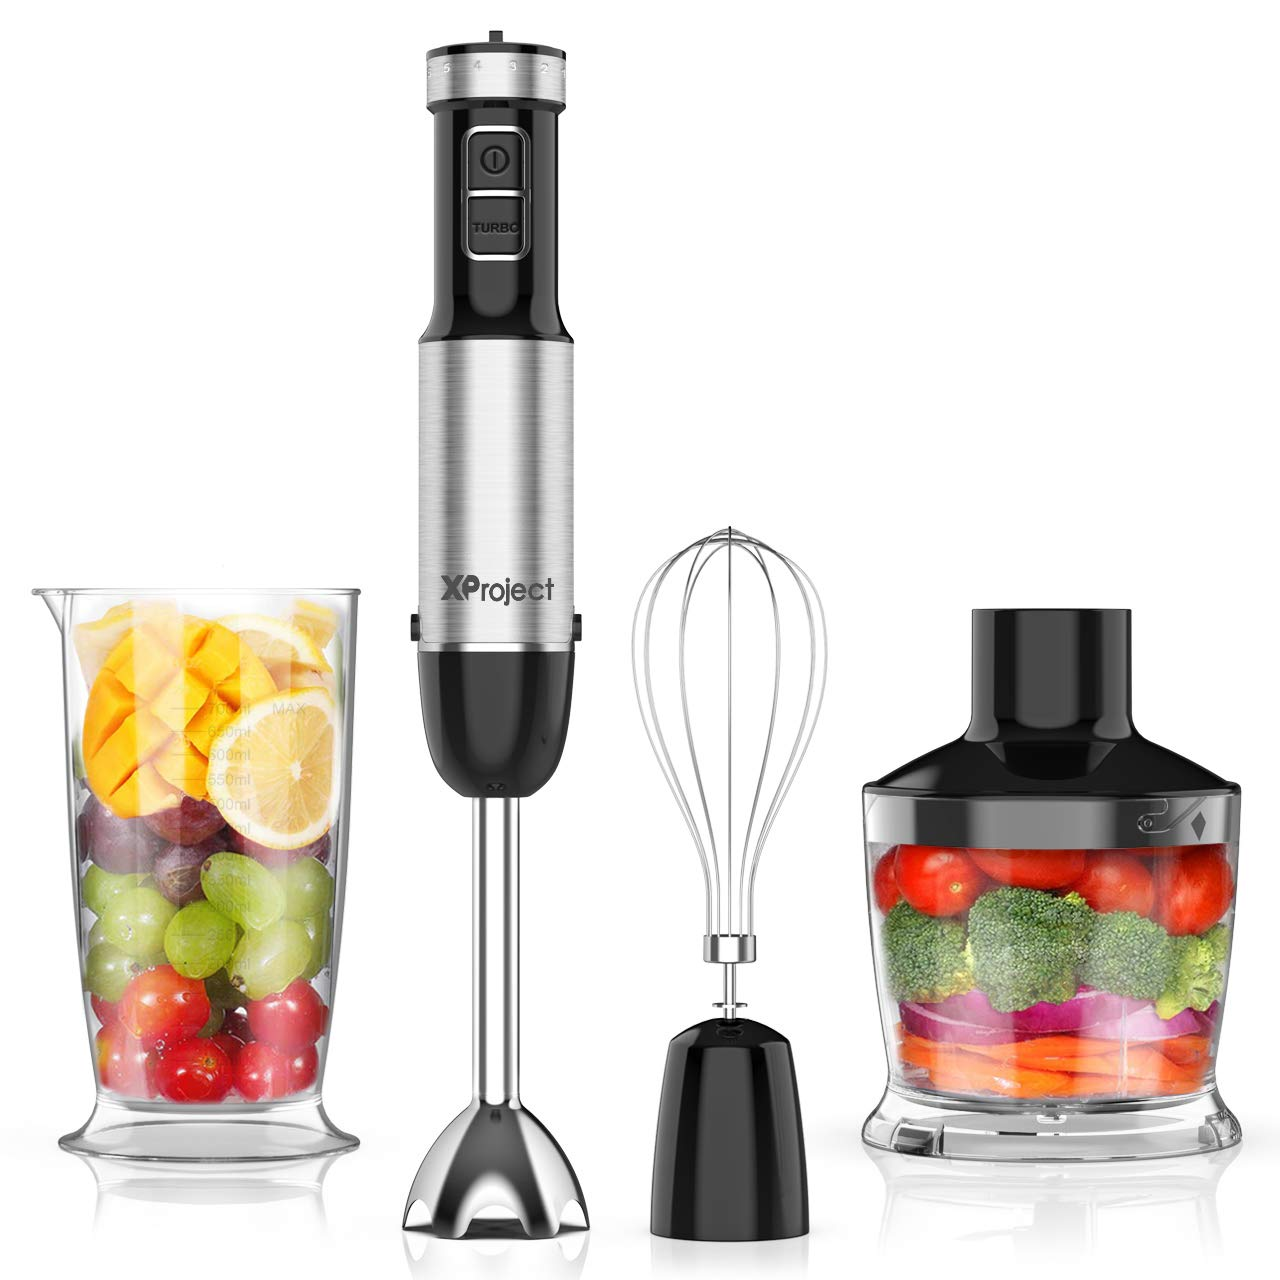 XProject 5-in-1 Hand Blender with 12 Speed,Stainless Steel Stick Blender, 800W Powerful Immersion Blender Includes BPA-Free Food Chopper/Egg Beater/Beaker Hand Mixer by XProject